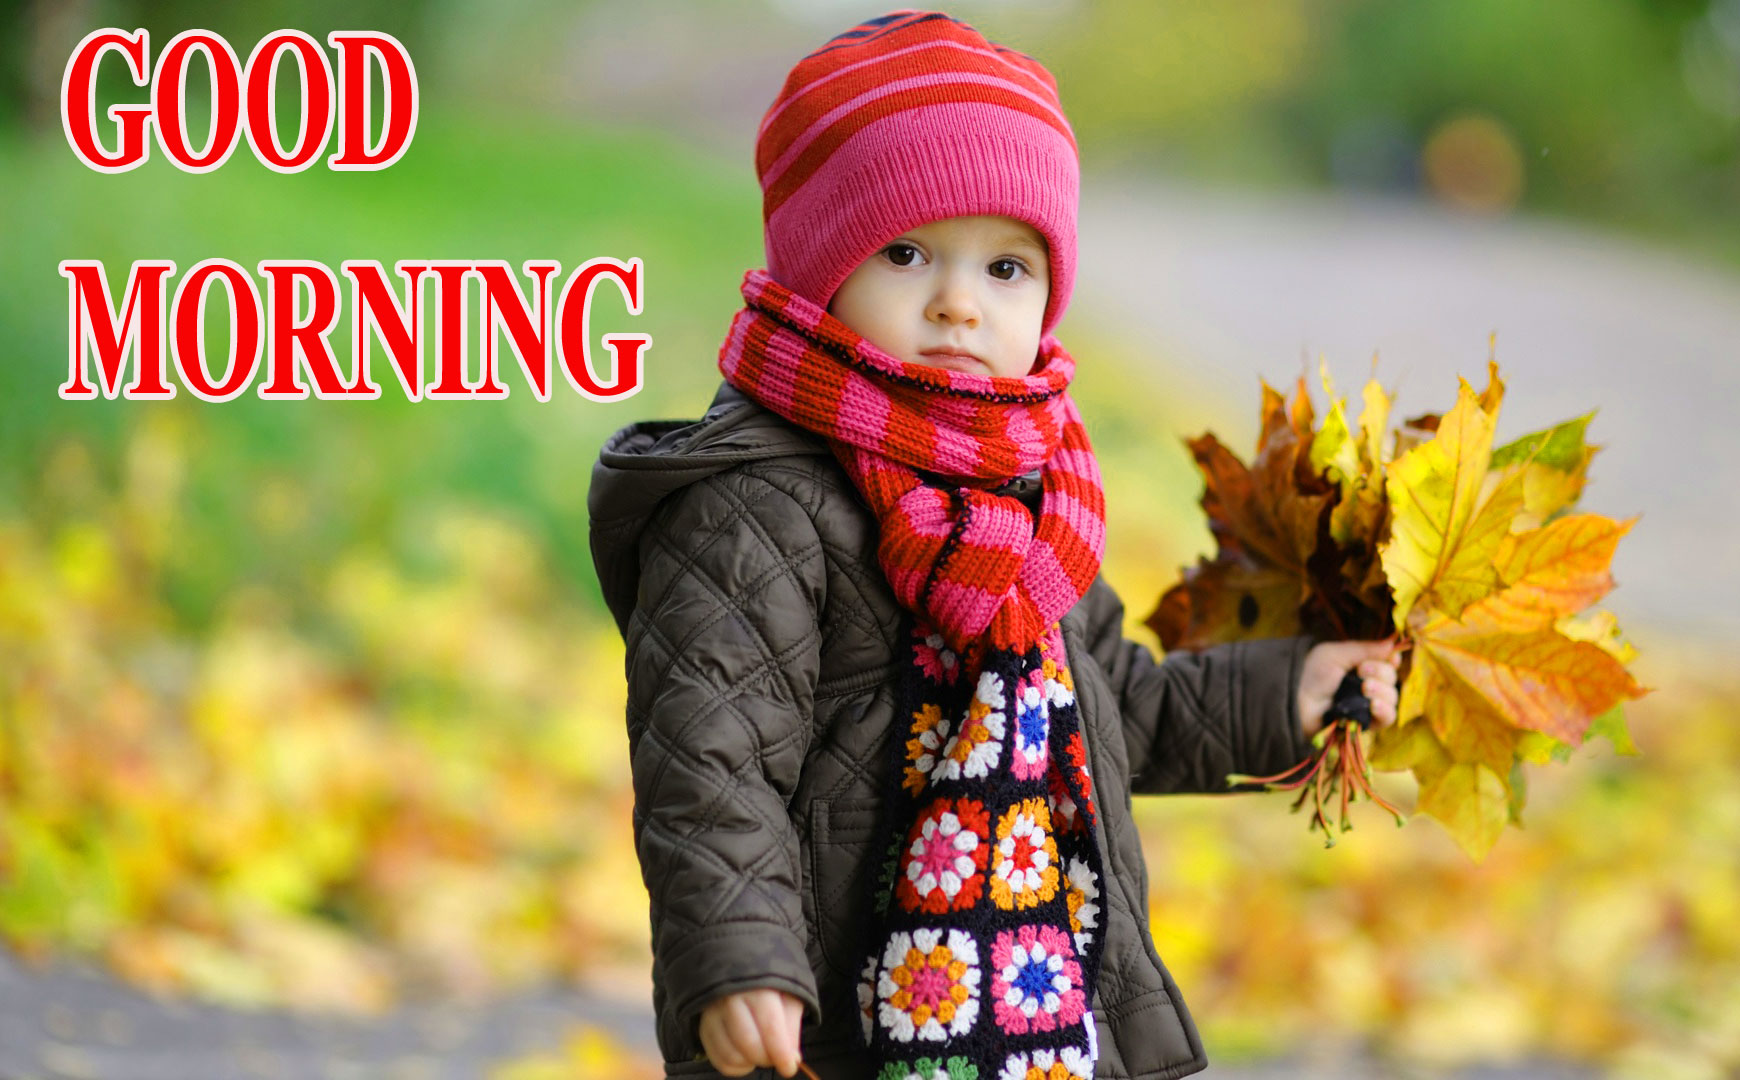 BEAUTIFUL LATEST AMAZING ALL GOOD MORNING IMAGES PICS DOWNLOAD IN HD